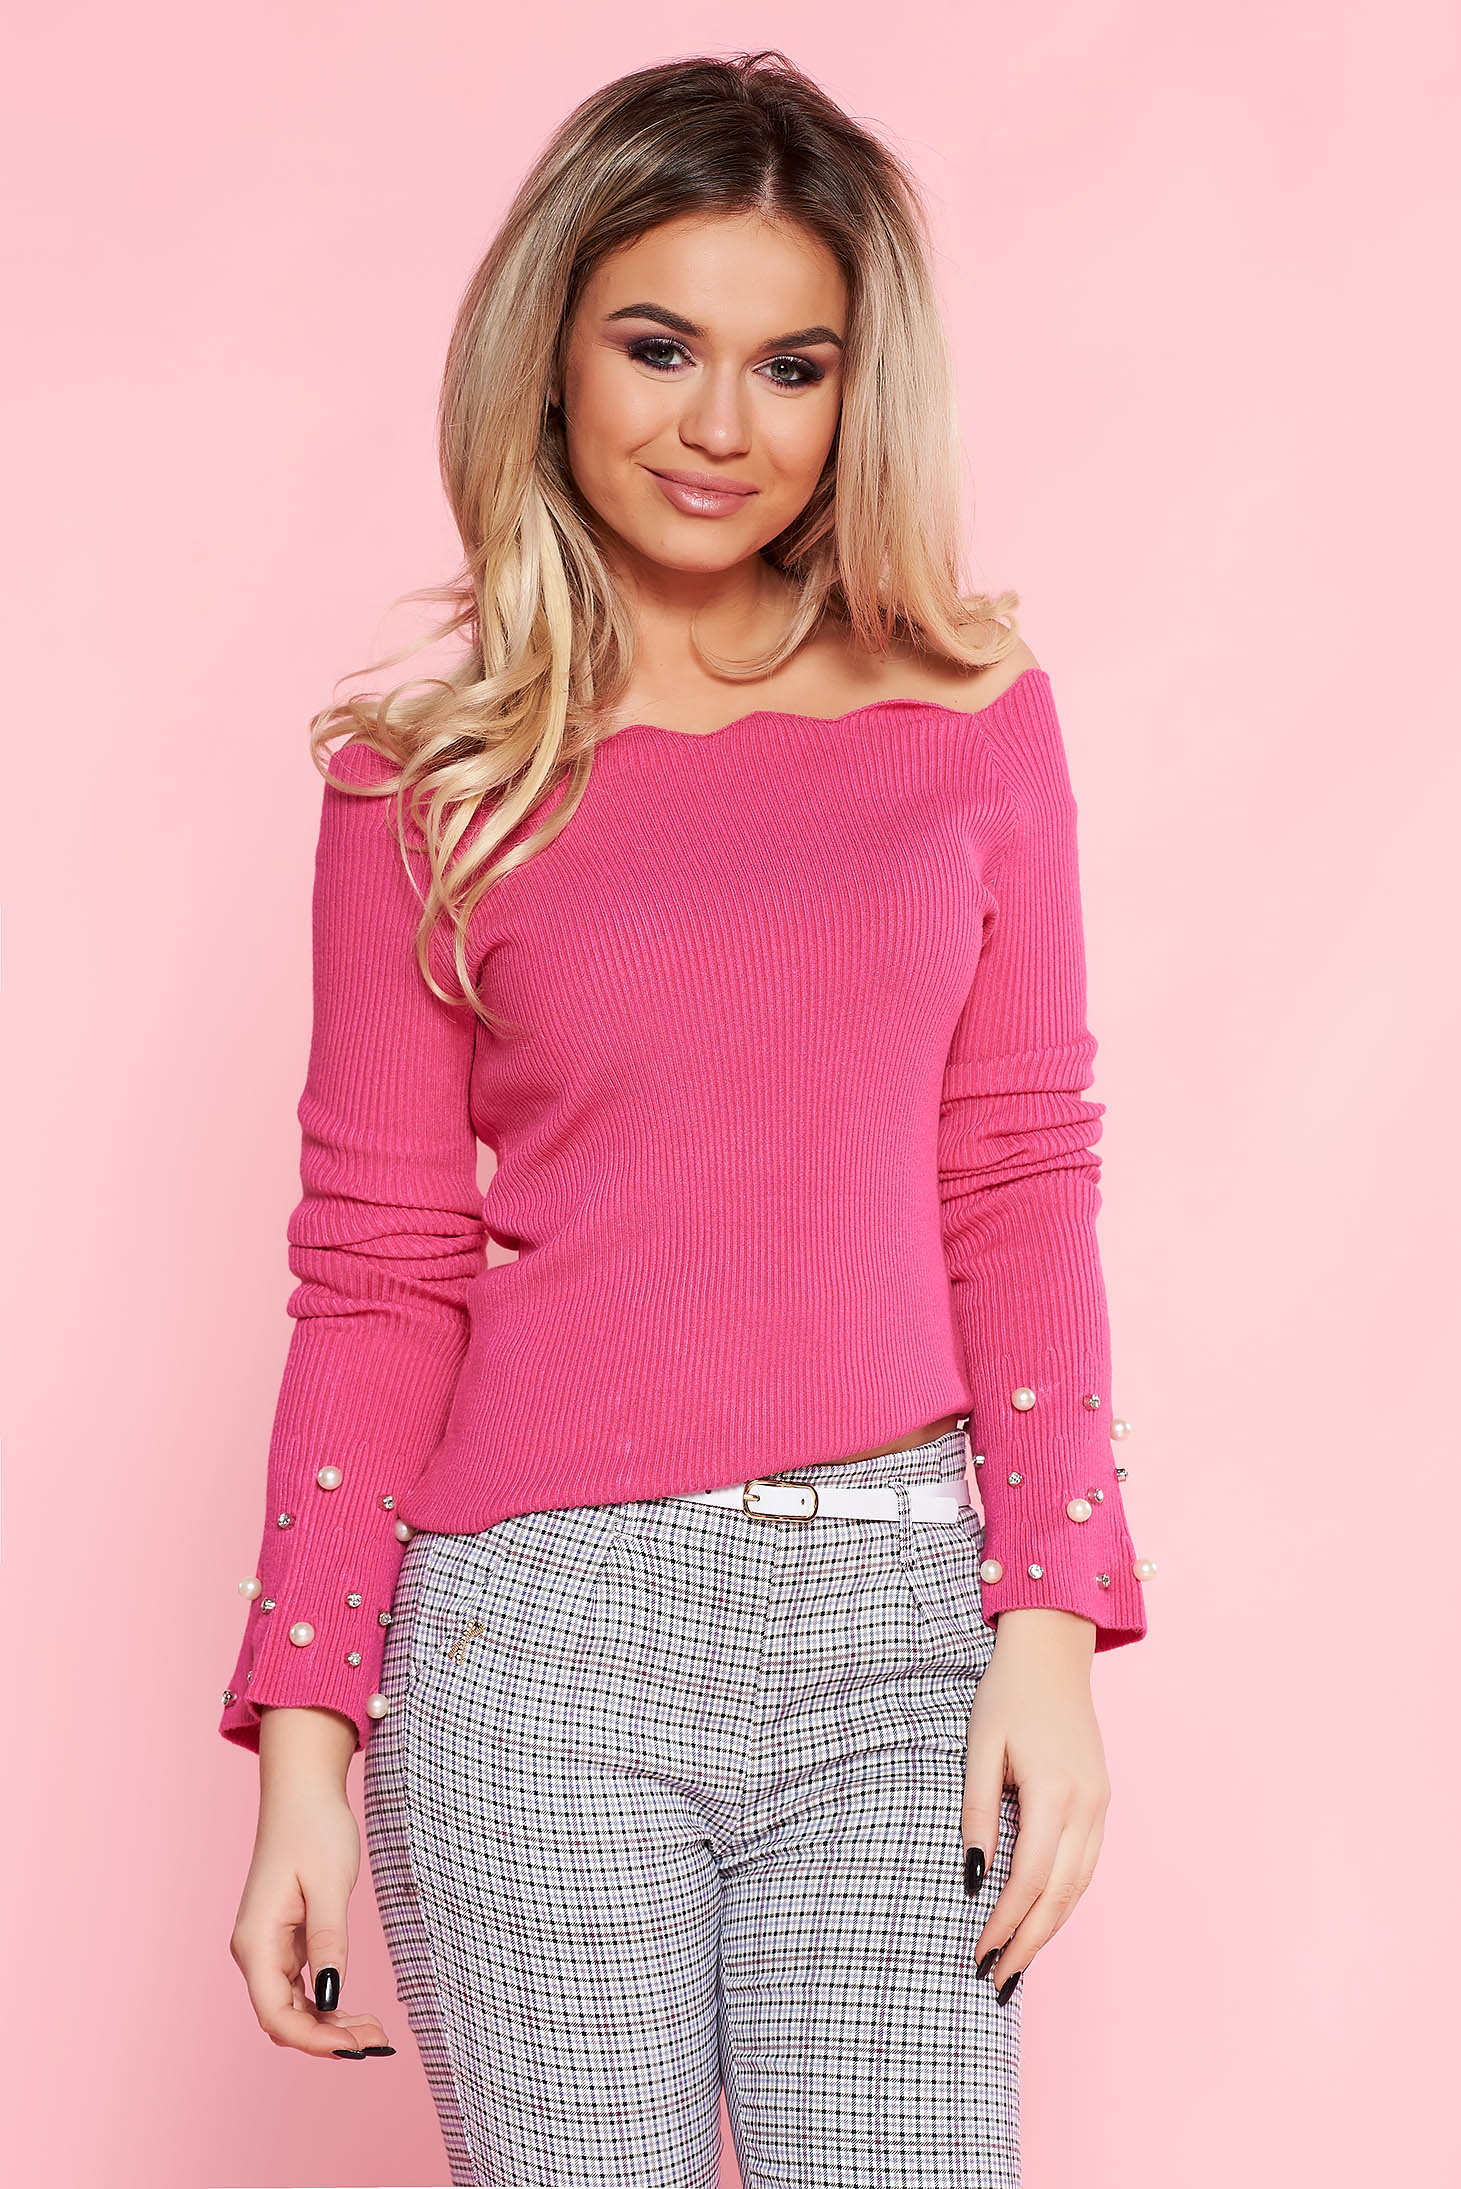 SunShine pink casual sweater with tented cut knitted fabric with pearls